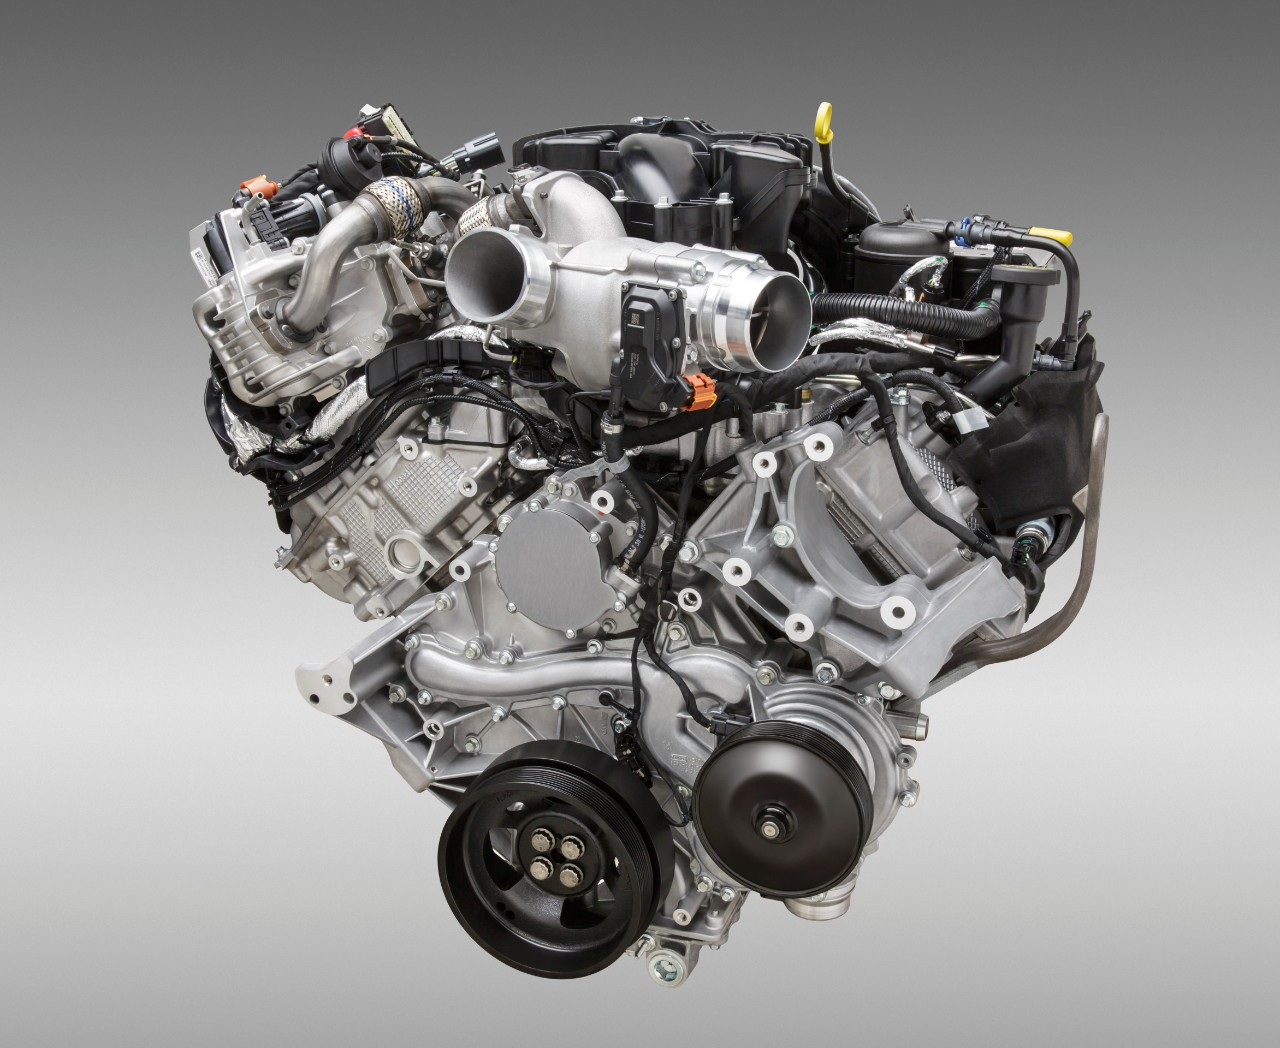 ford f 650 f 750 6 7 liter turbo diesel engine from story 2016 ford